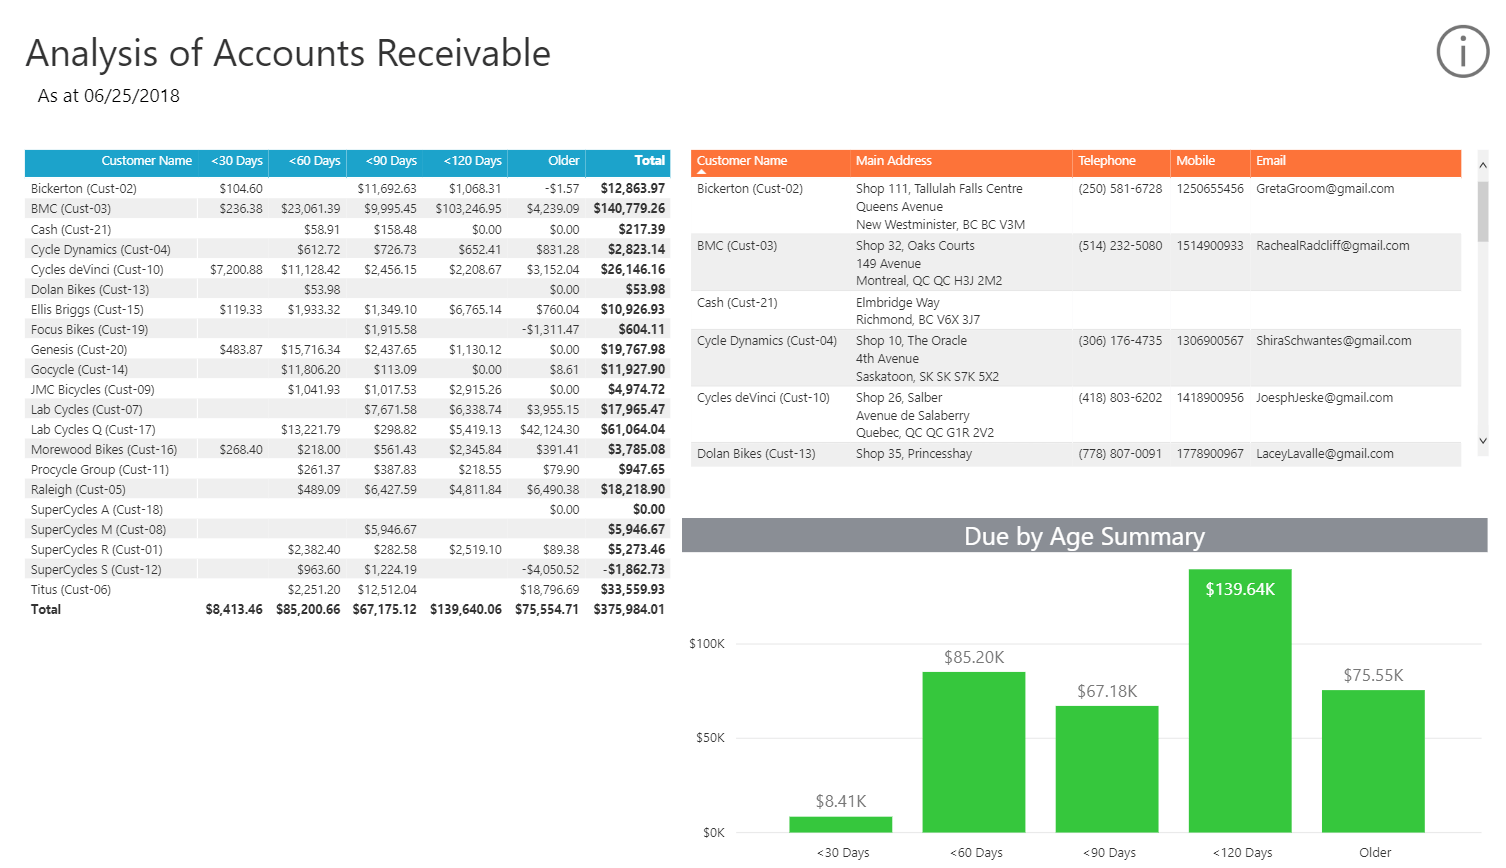 Collect Your Cash With Theysis Of Accounts Receivable